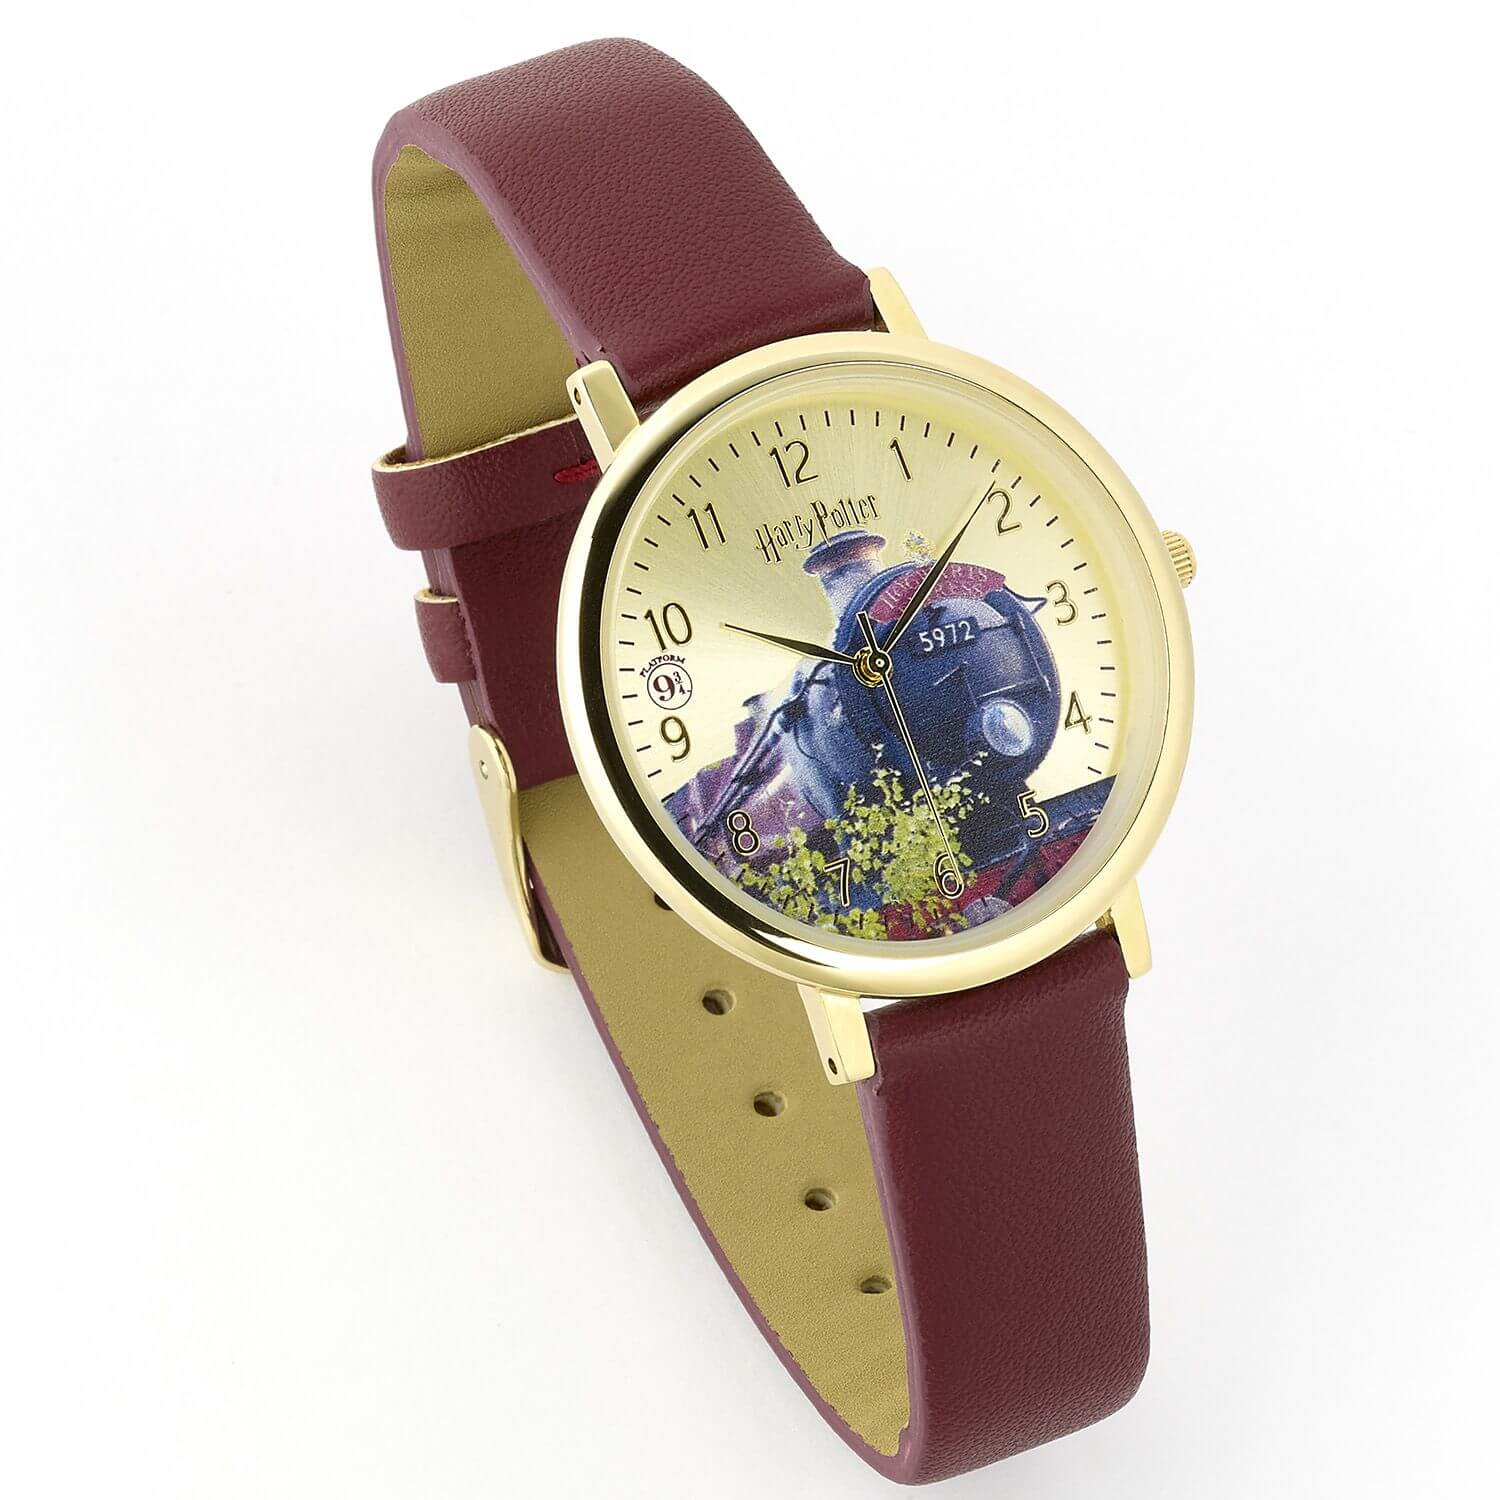 Montre poudlard express - harry potter